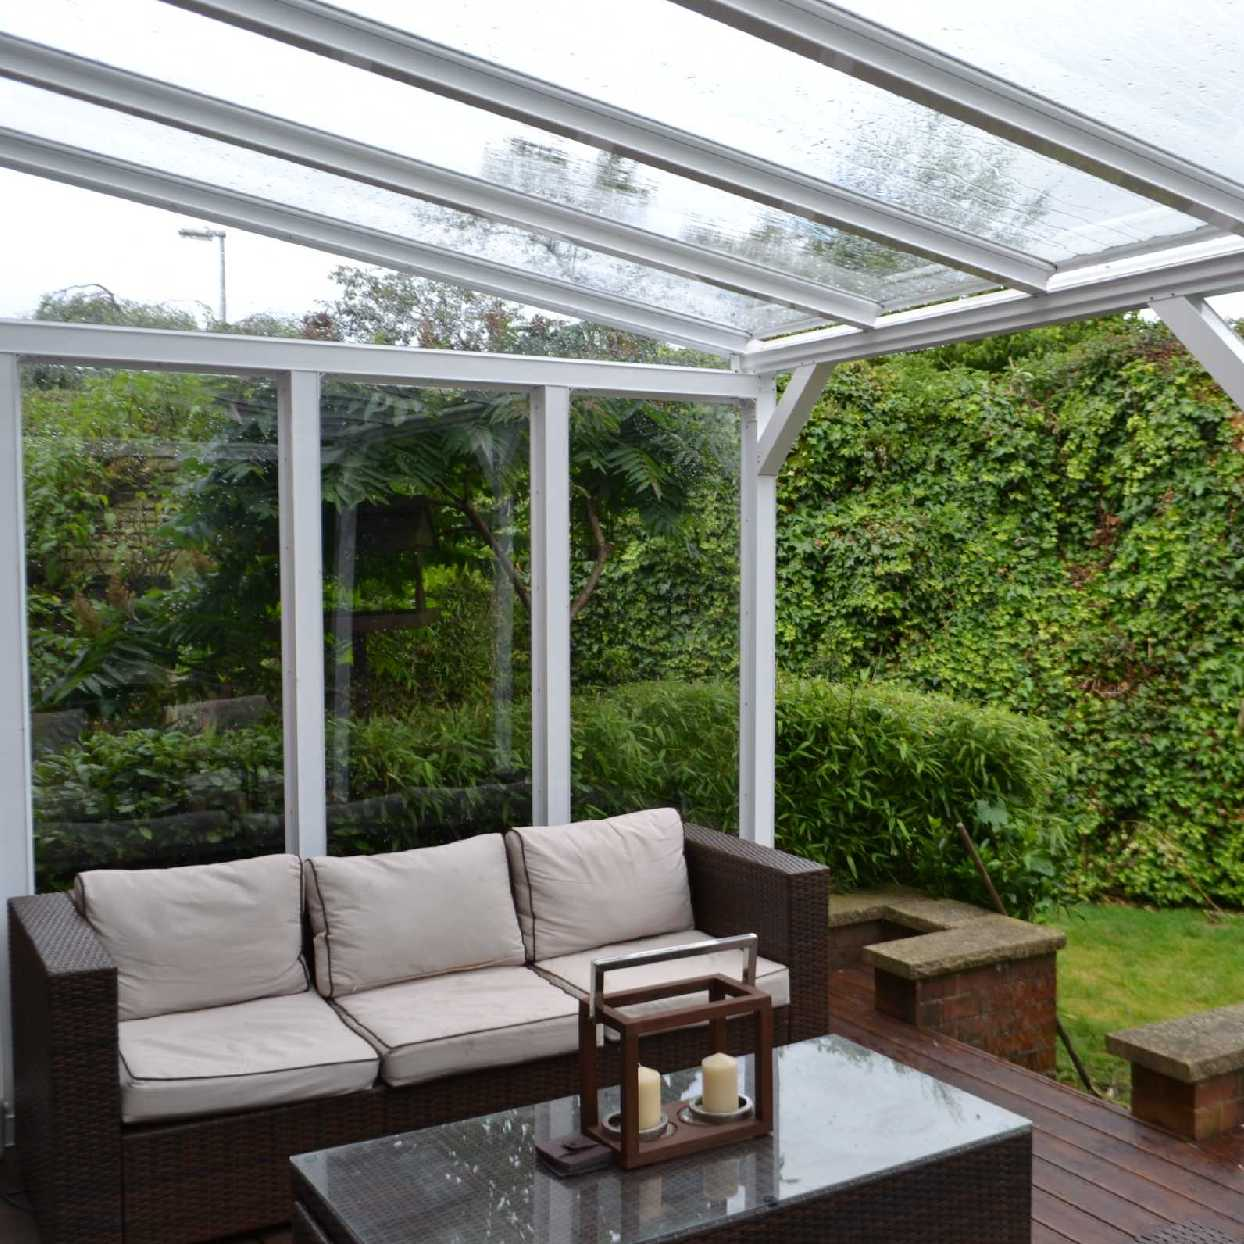 Great selection of Omega Smart Lean-To Canopy with 16mm Polycarbonate Glazing - 2.1m (W) x 3.5m (P), (2) Supporting Posts